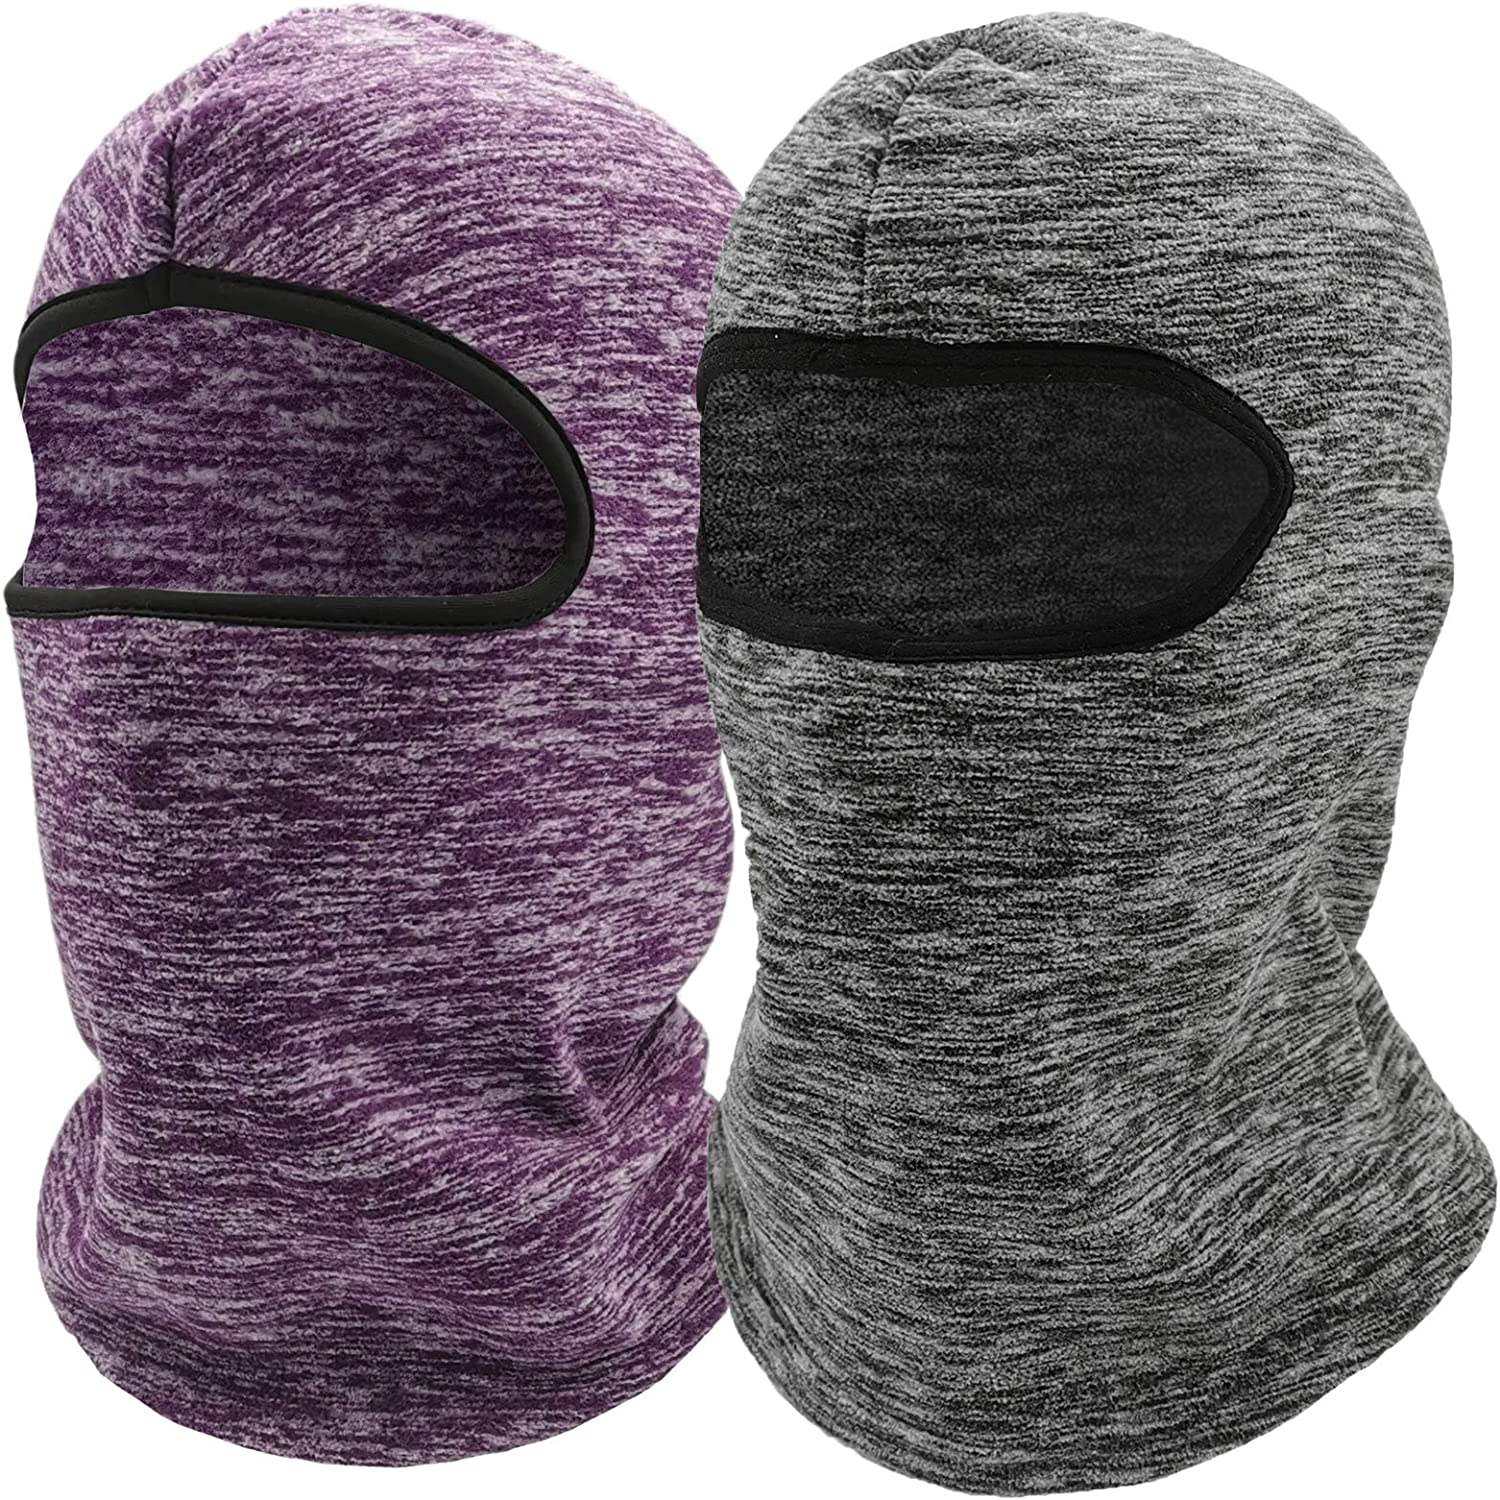 Balaclava Ski Mask Fleece Neck Windproof Warmer excellence Thermal Inventory cleanup selling sale Winter